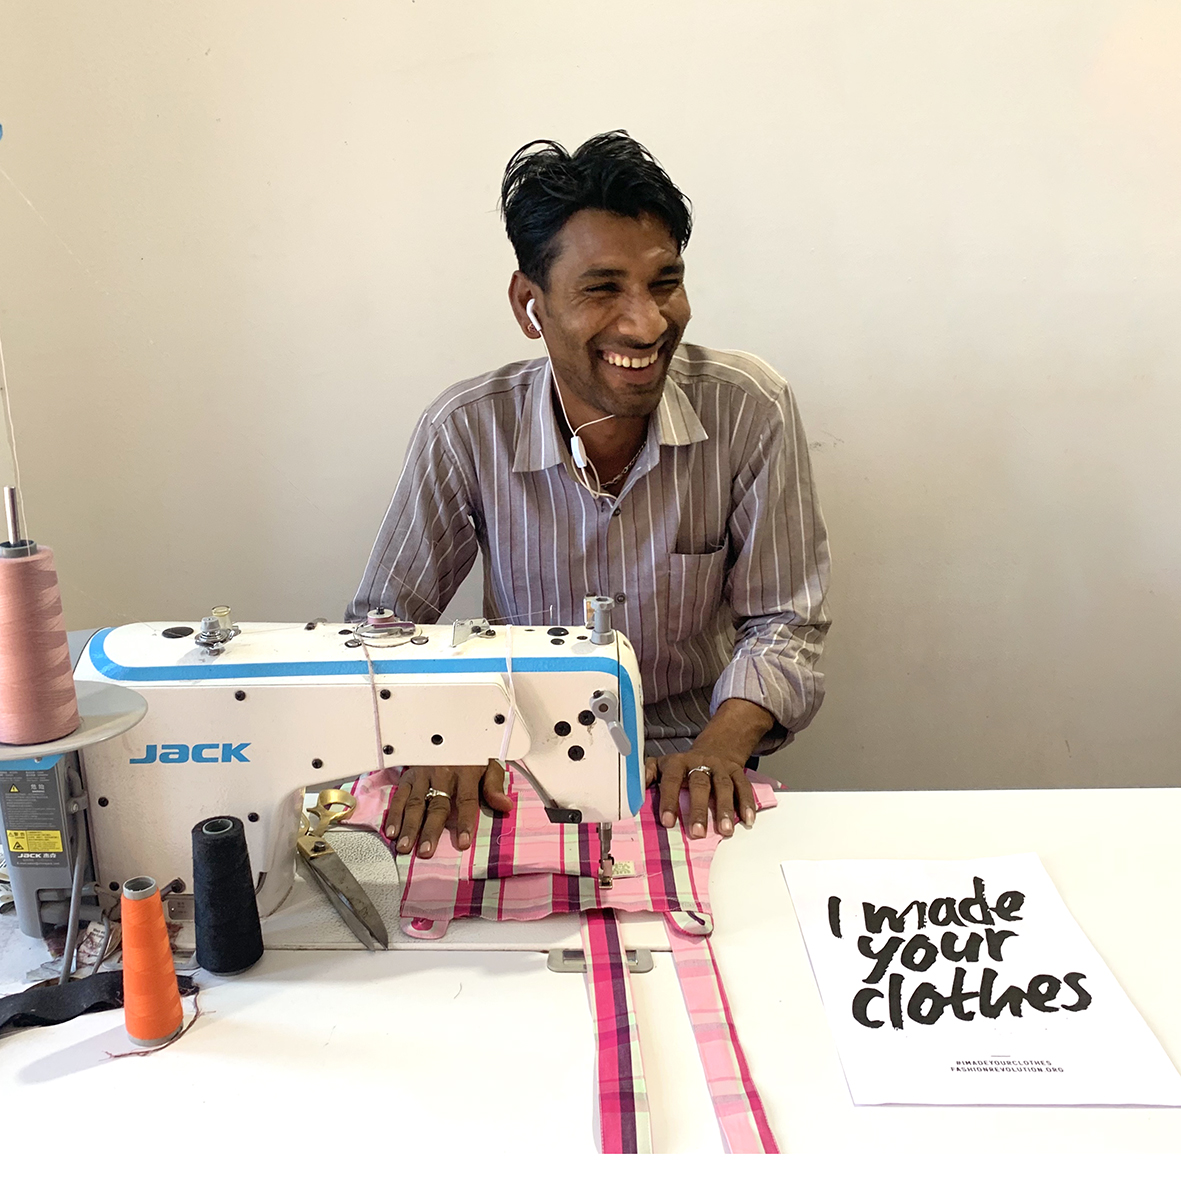 #IMadeYourClothes This is Raju making some of the limited edition Lucy & Yak dungarees in their factory in India which is powered by the sun with their fabulous solar panels!